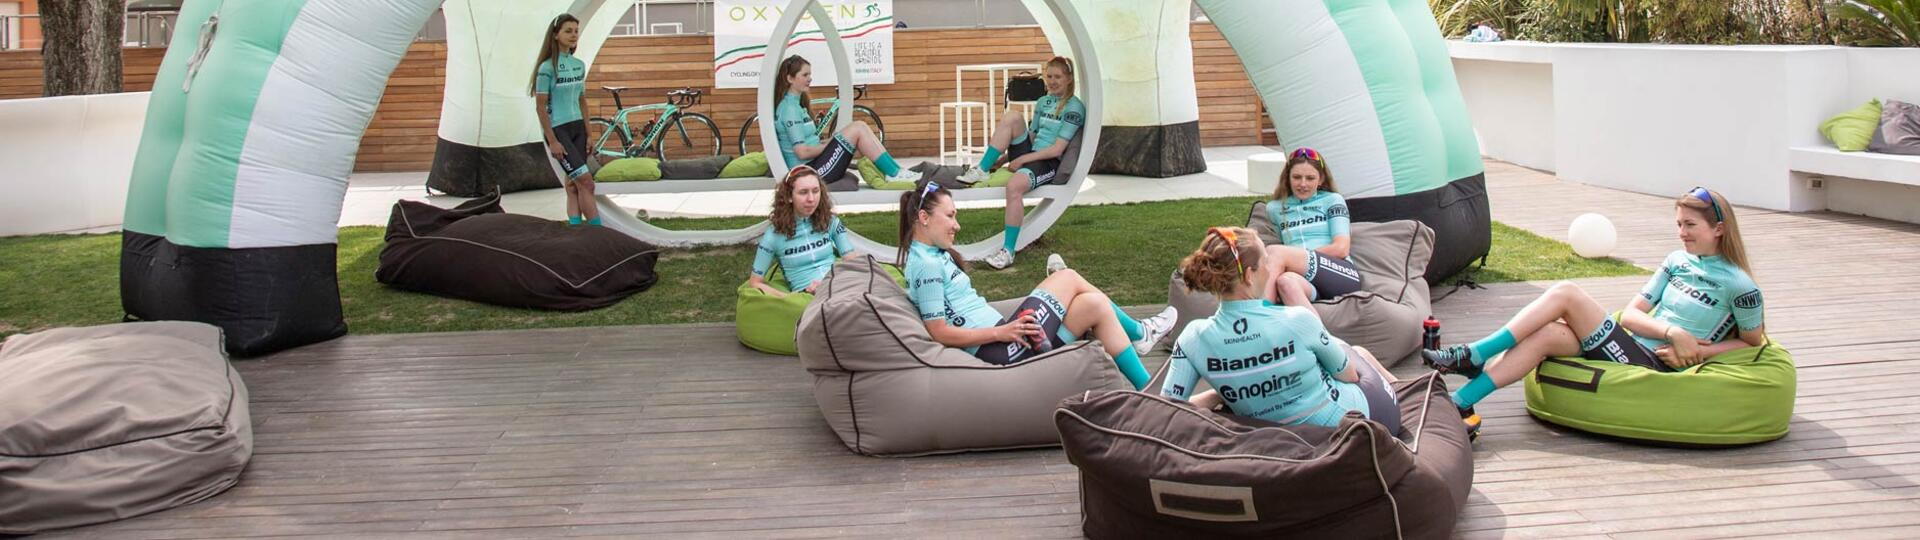 cycling.oxygenhotel it all-bike-la-fatica-classica 014